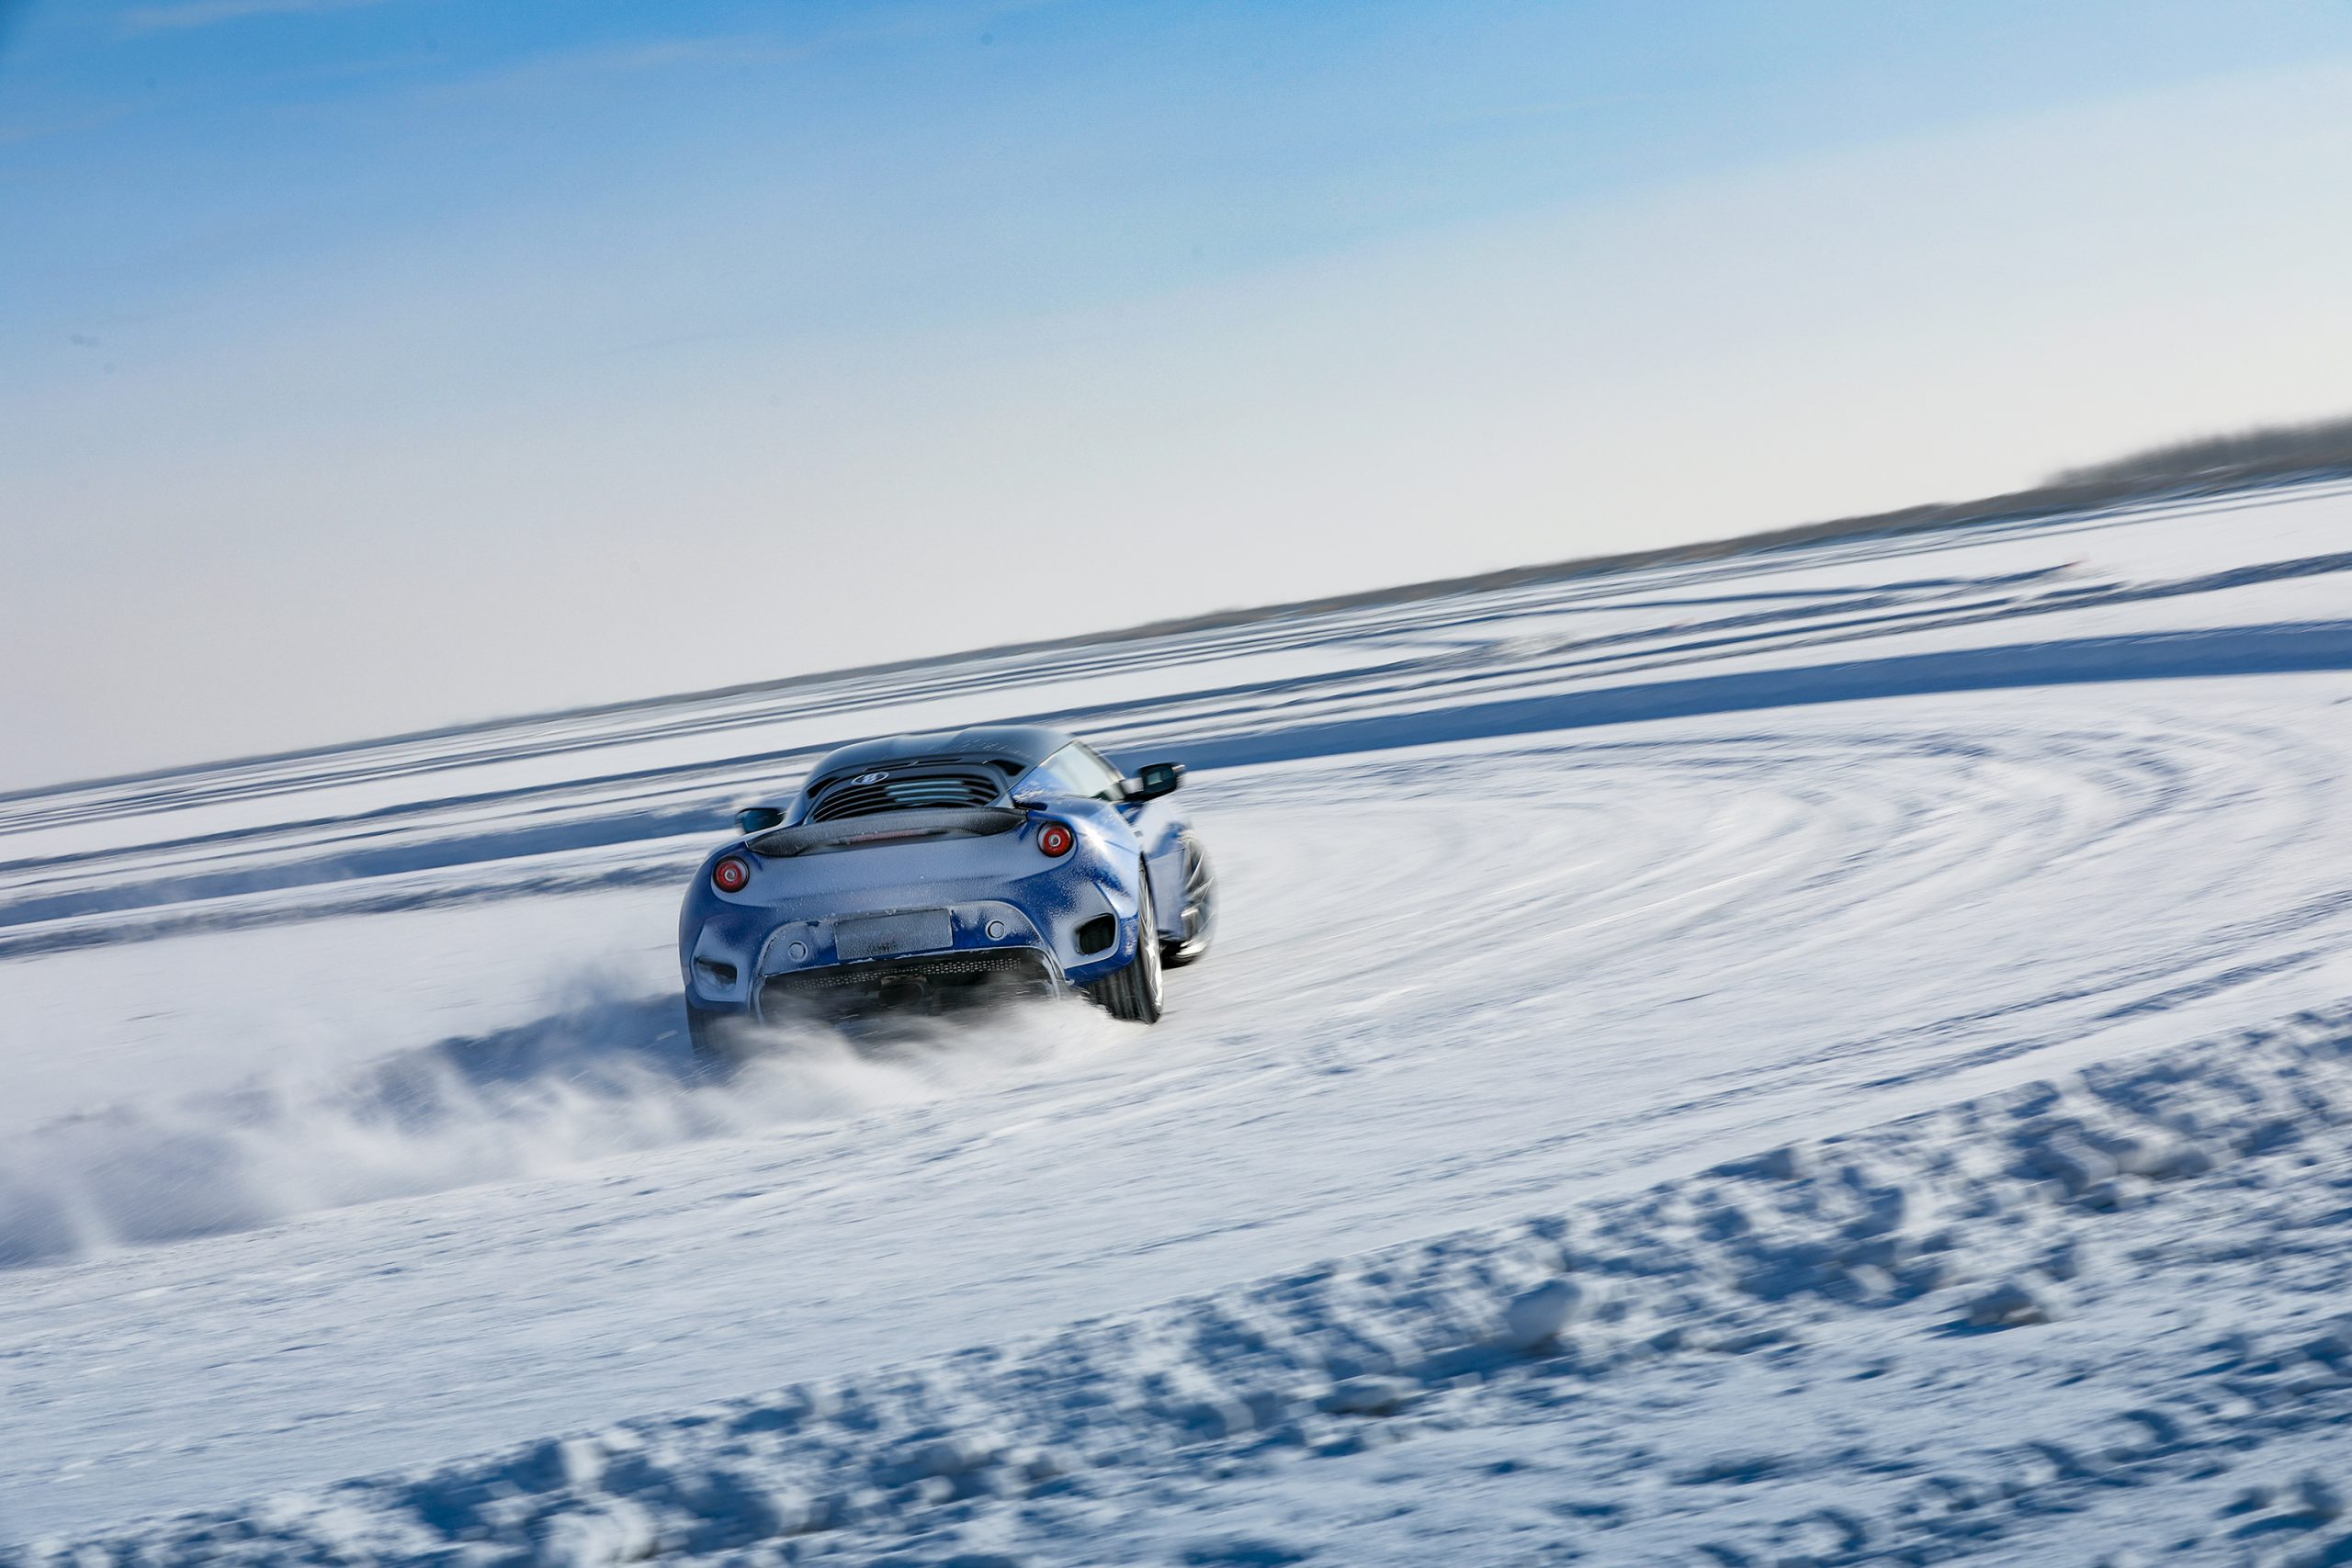 Lotus Winter Driving Academy